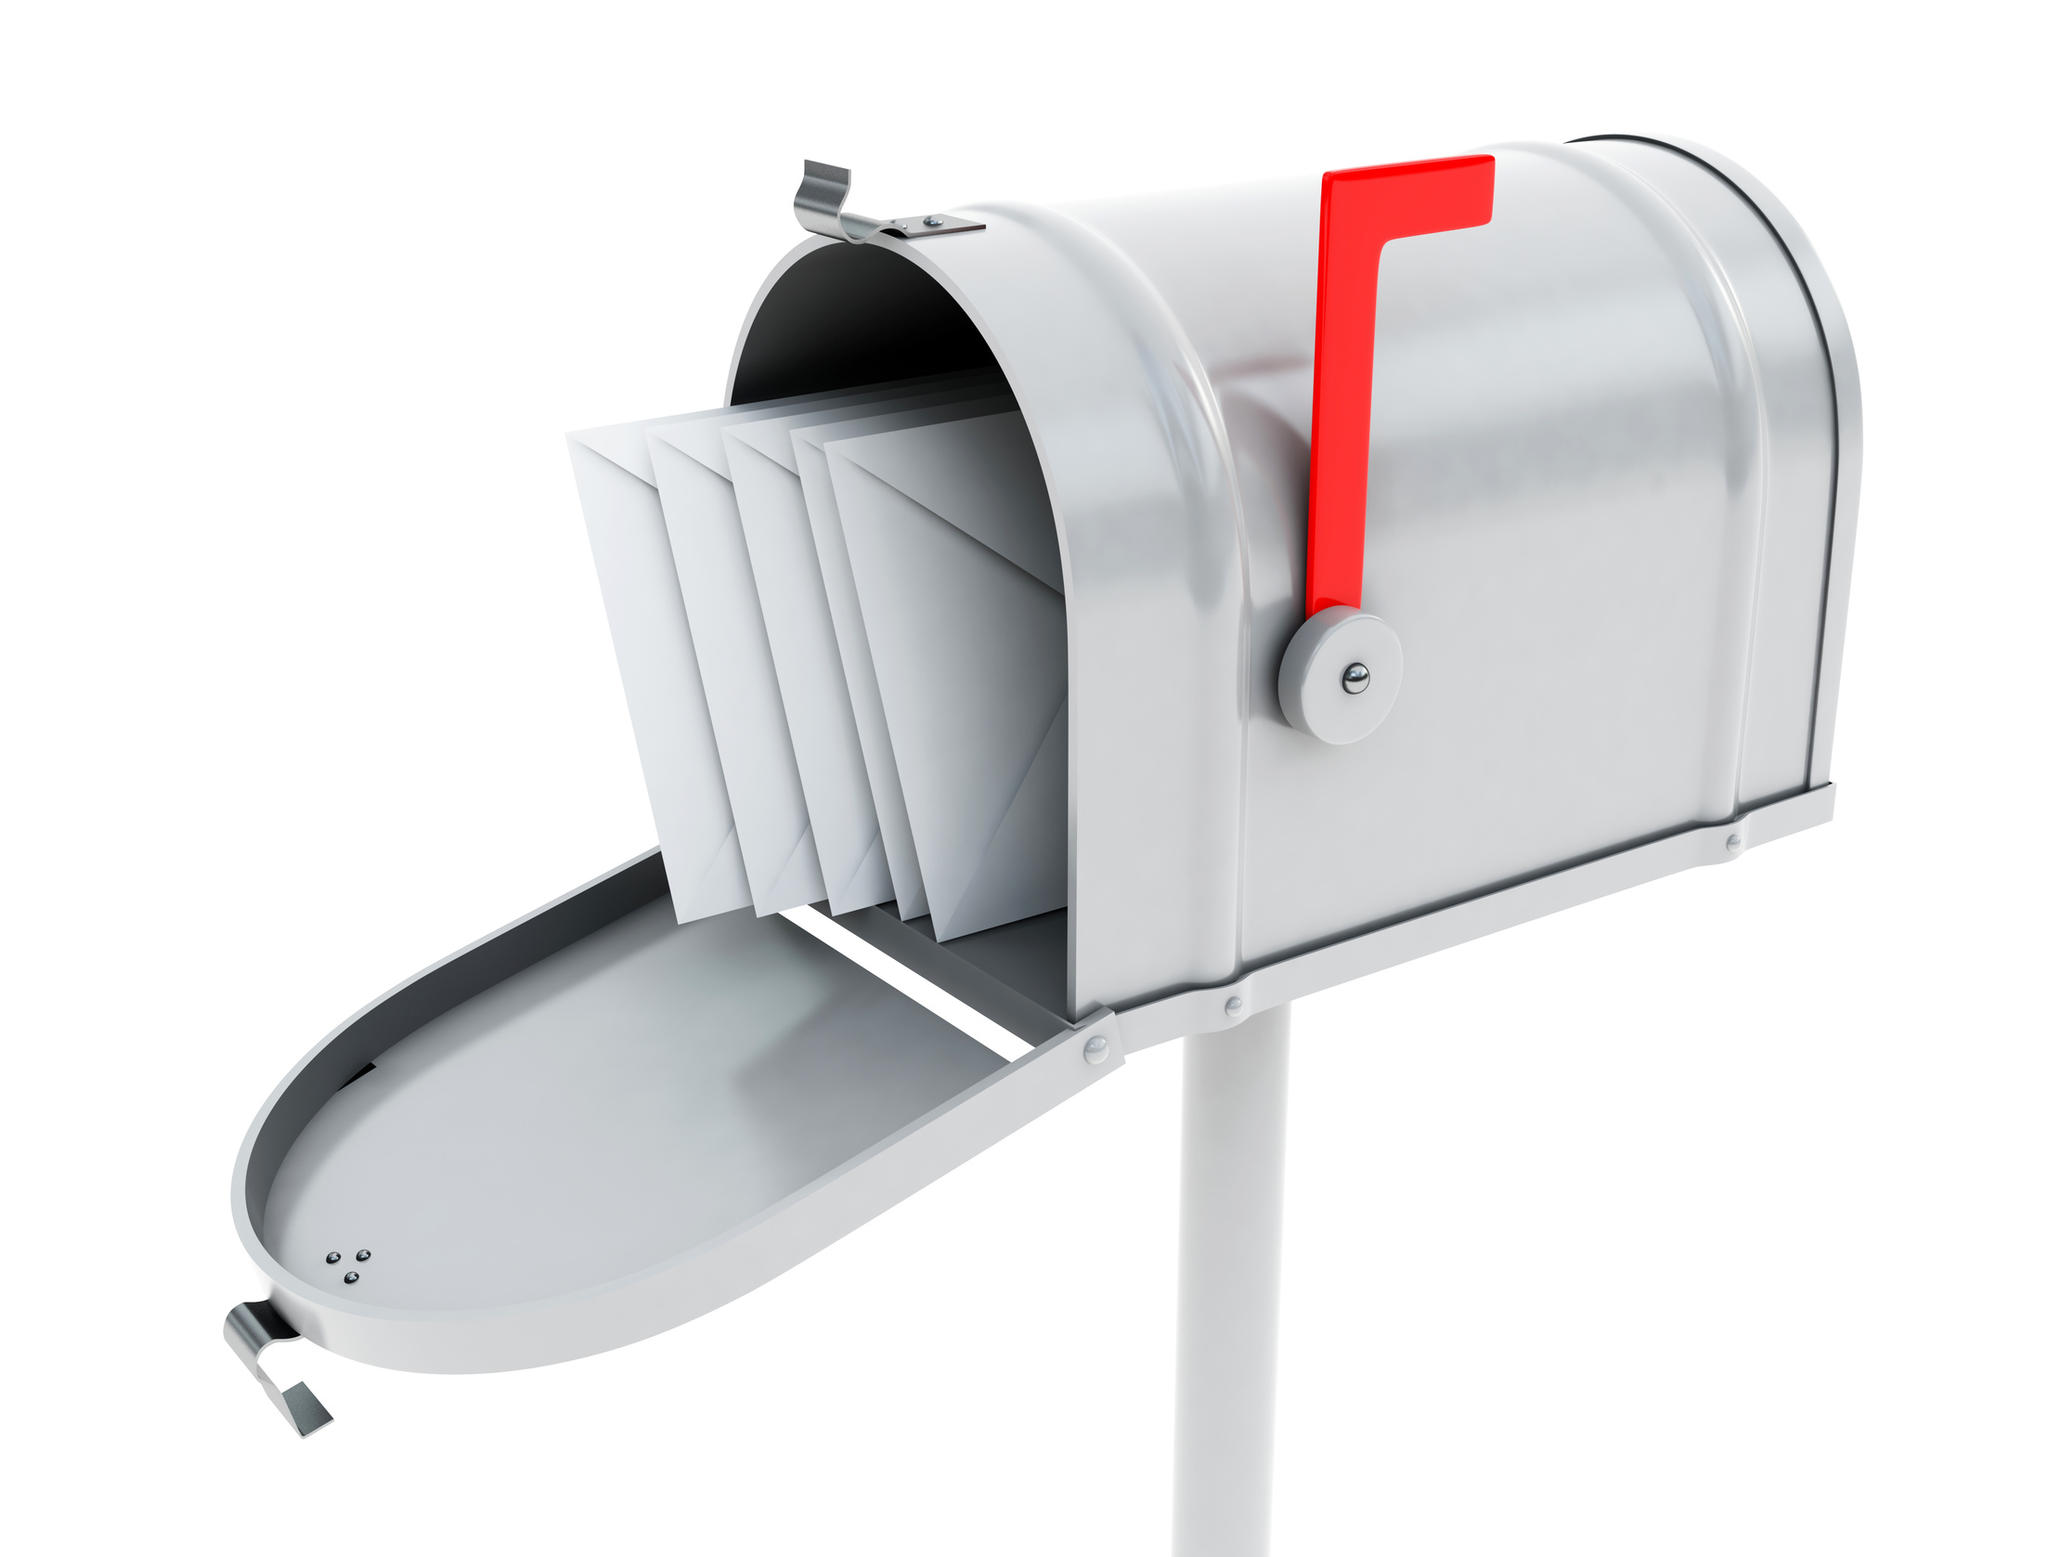 Mailbox With Mail White Mailbox With Mail NusaNet Nongzico